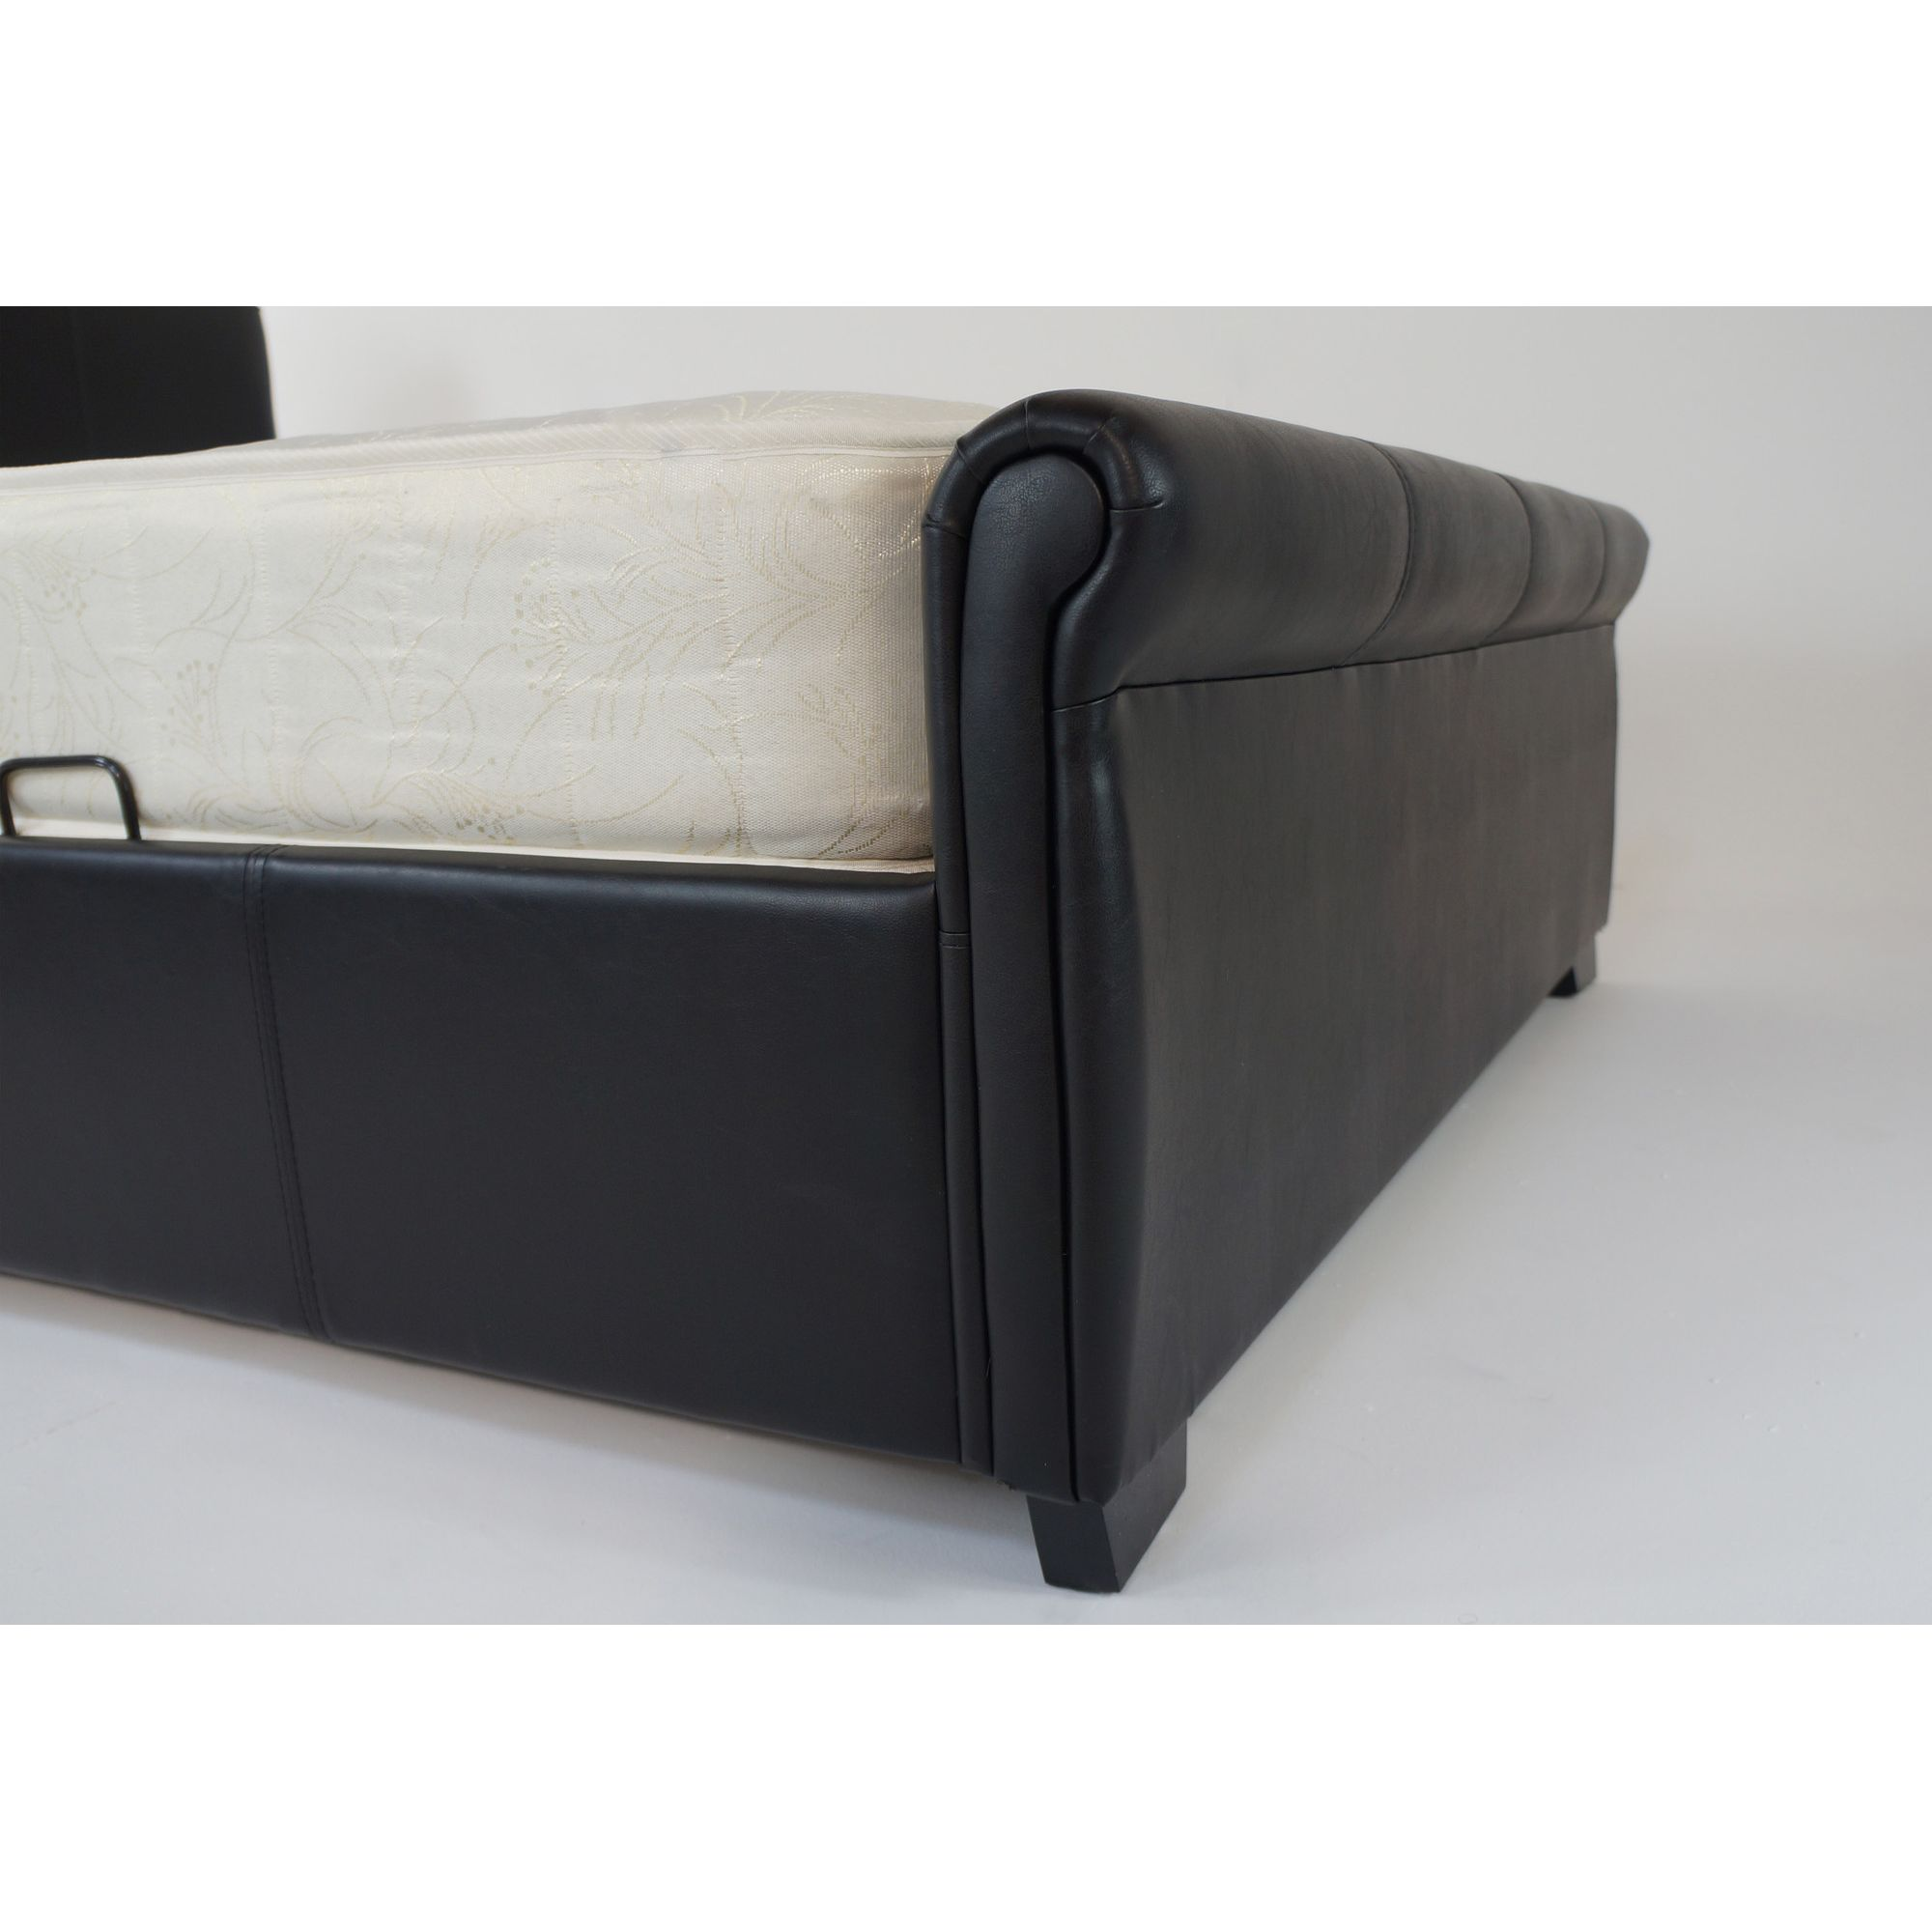 Alpha furniture Roma Real Leather Bed - Black - King at Tesco Direct